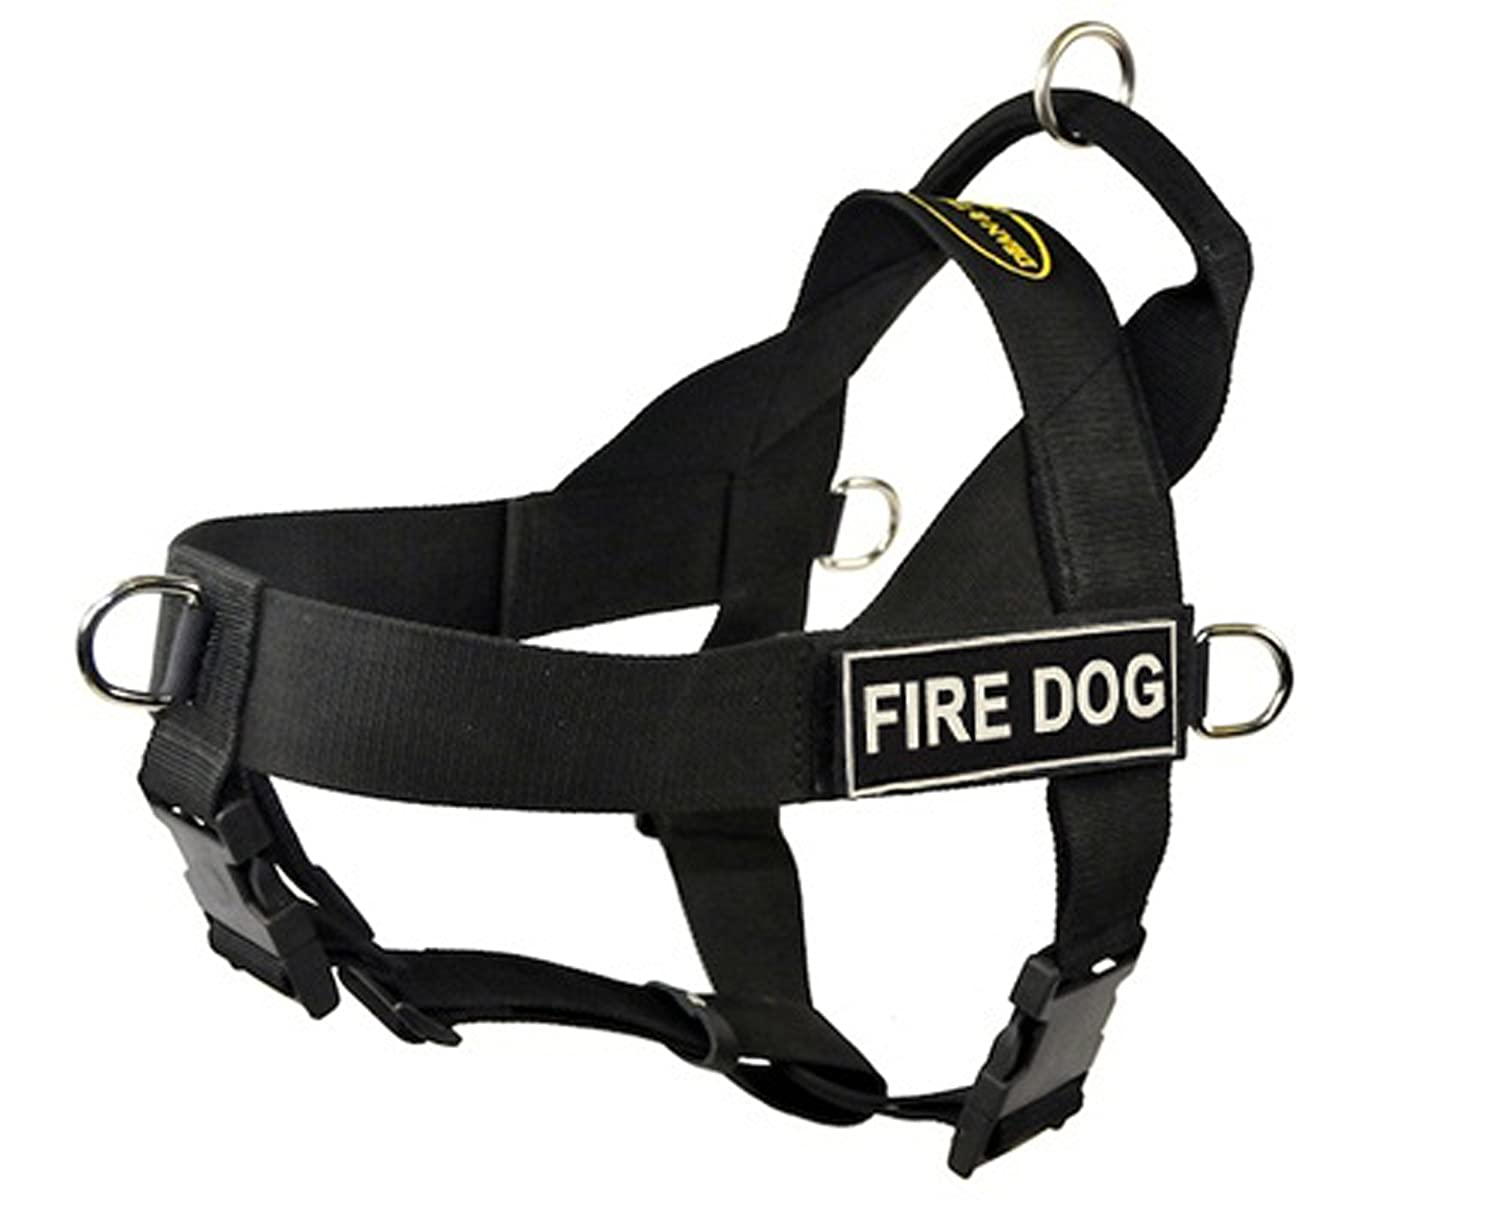 DT Universal No Pull Dog Harness, Fire Dog, Black, Small, Fits Girth Size  24-Inch to 27-Inch